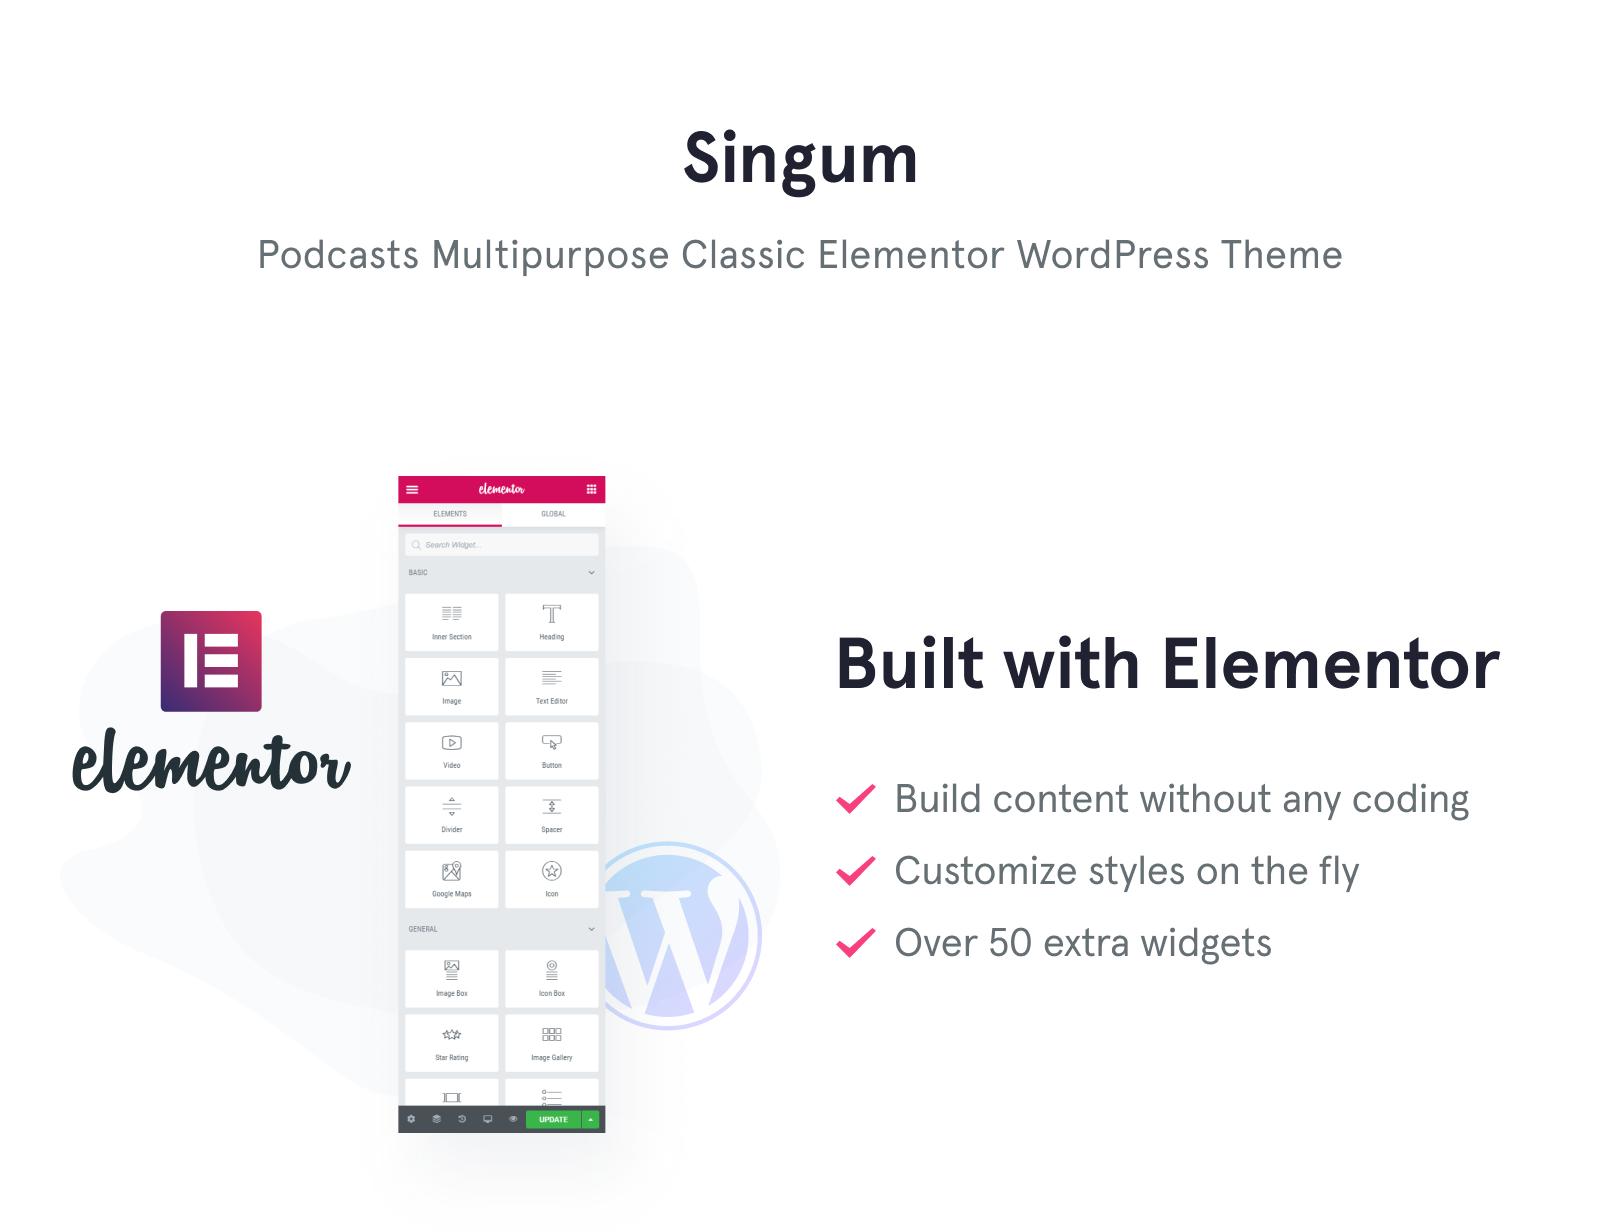 Singum - Podcaster Multipurpose Classic Elementor WordPress Theme